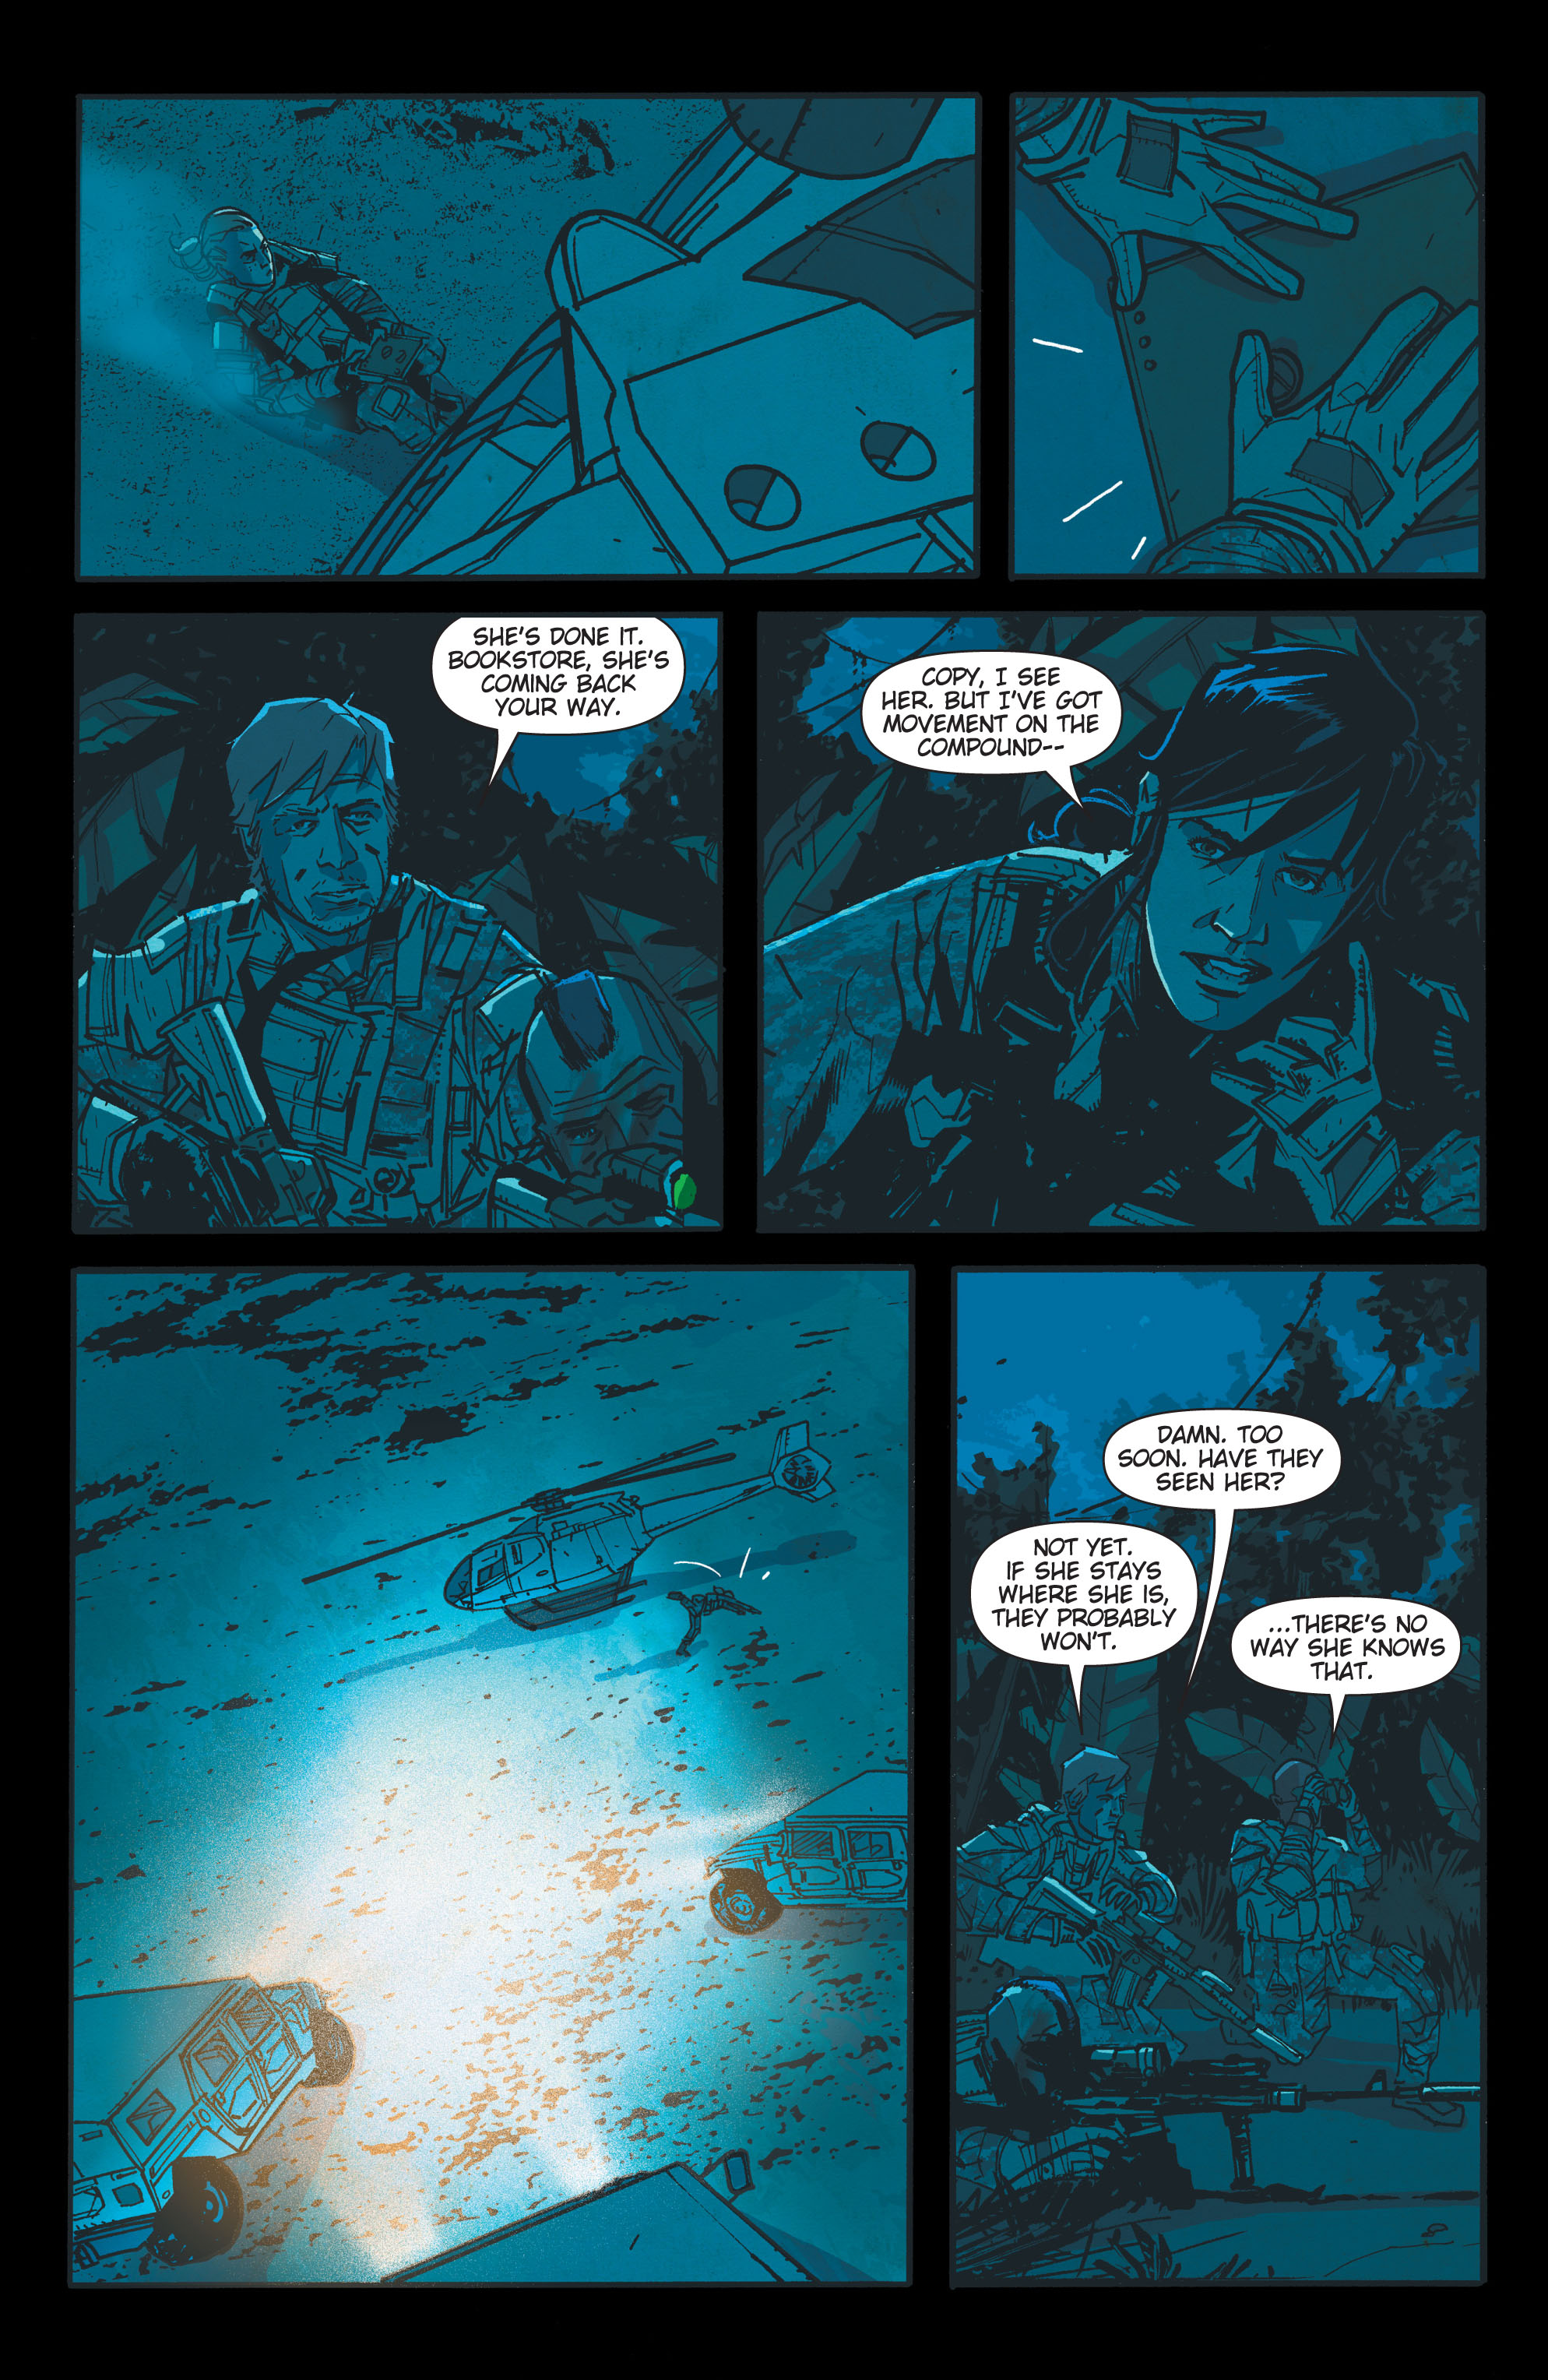 Read online The Activity comic -  Issue #4 - 15